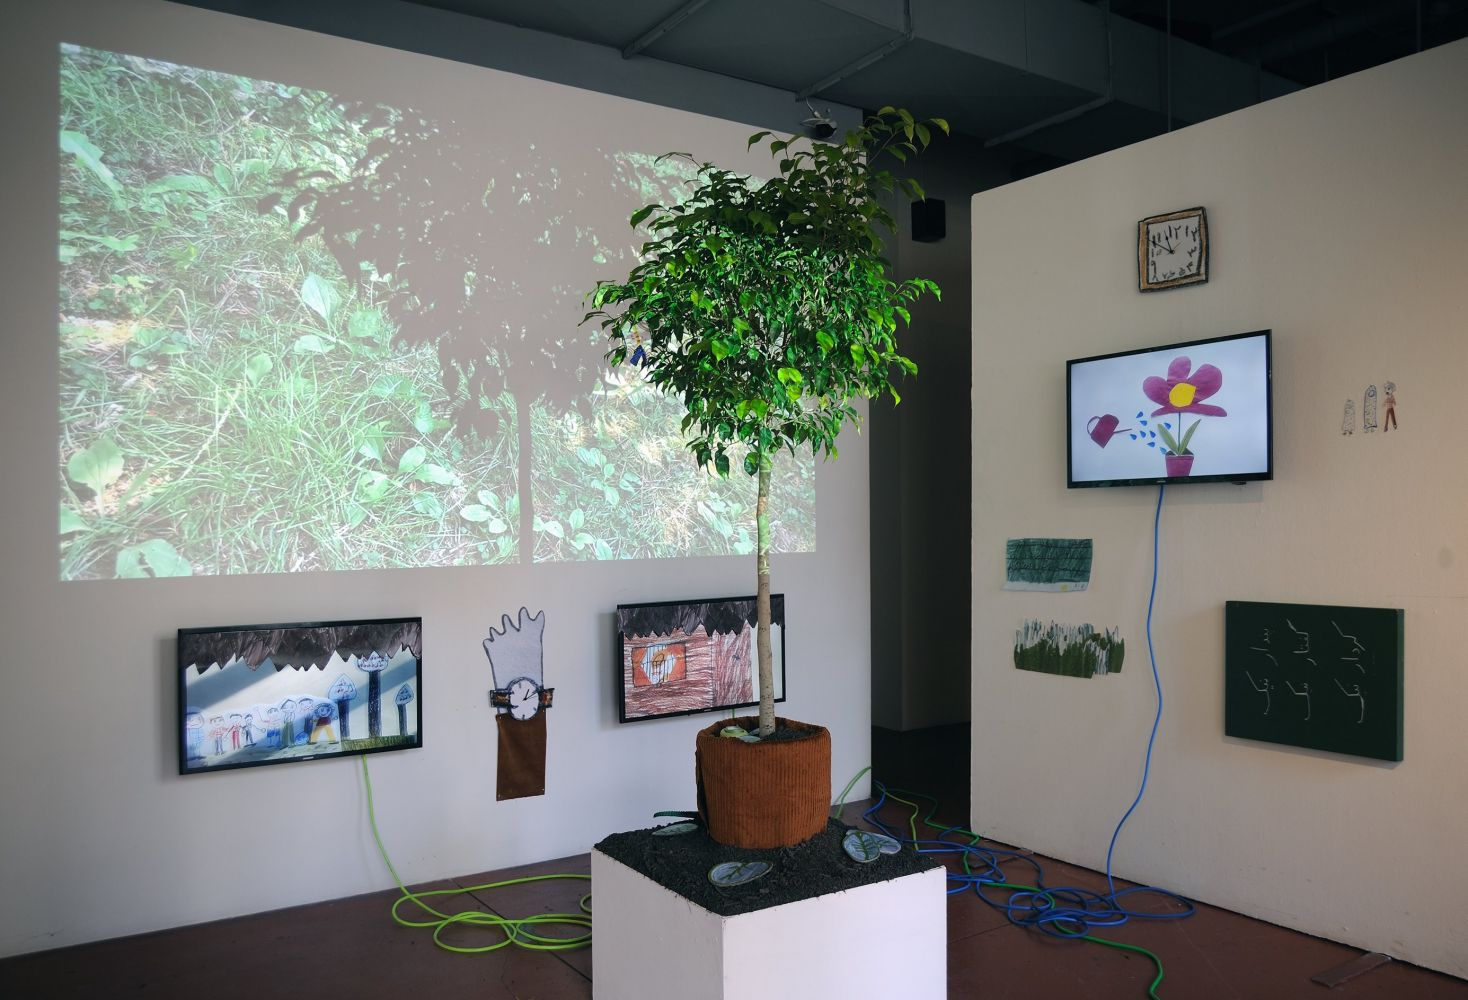 Mojdeh Rezaeipour, Stories We Tell Ourselves, 2020, Mixed media and video installation, Dimensions variable